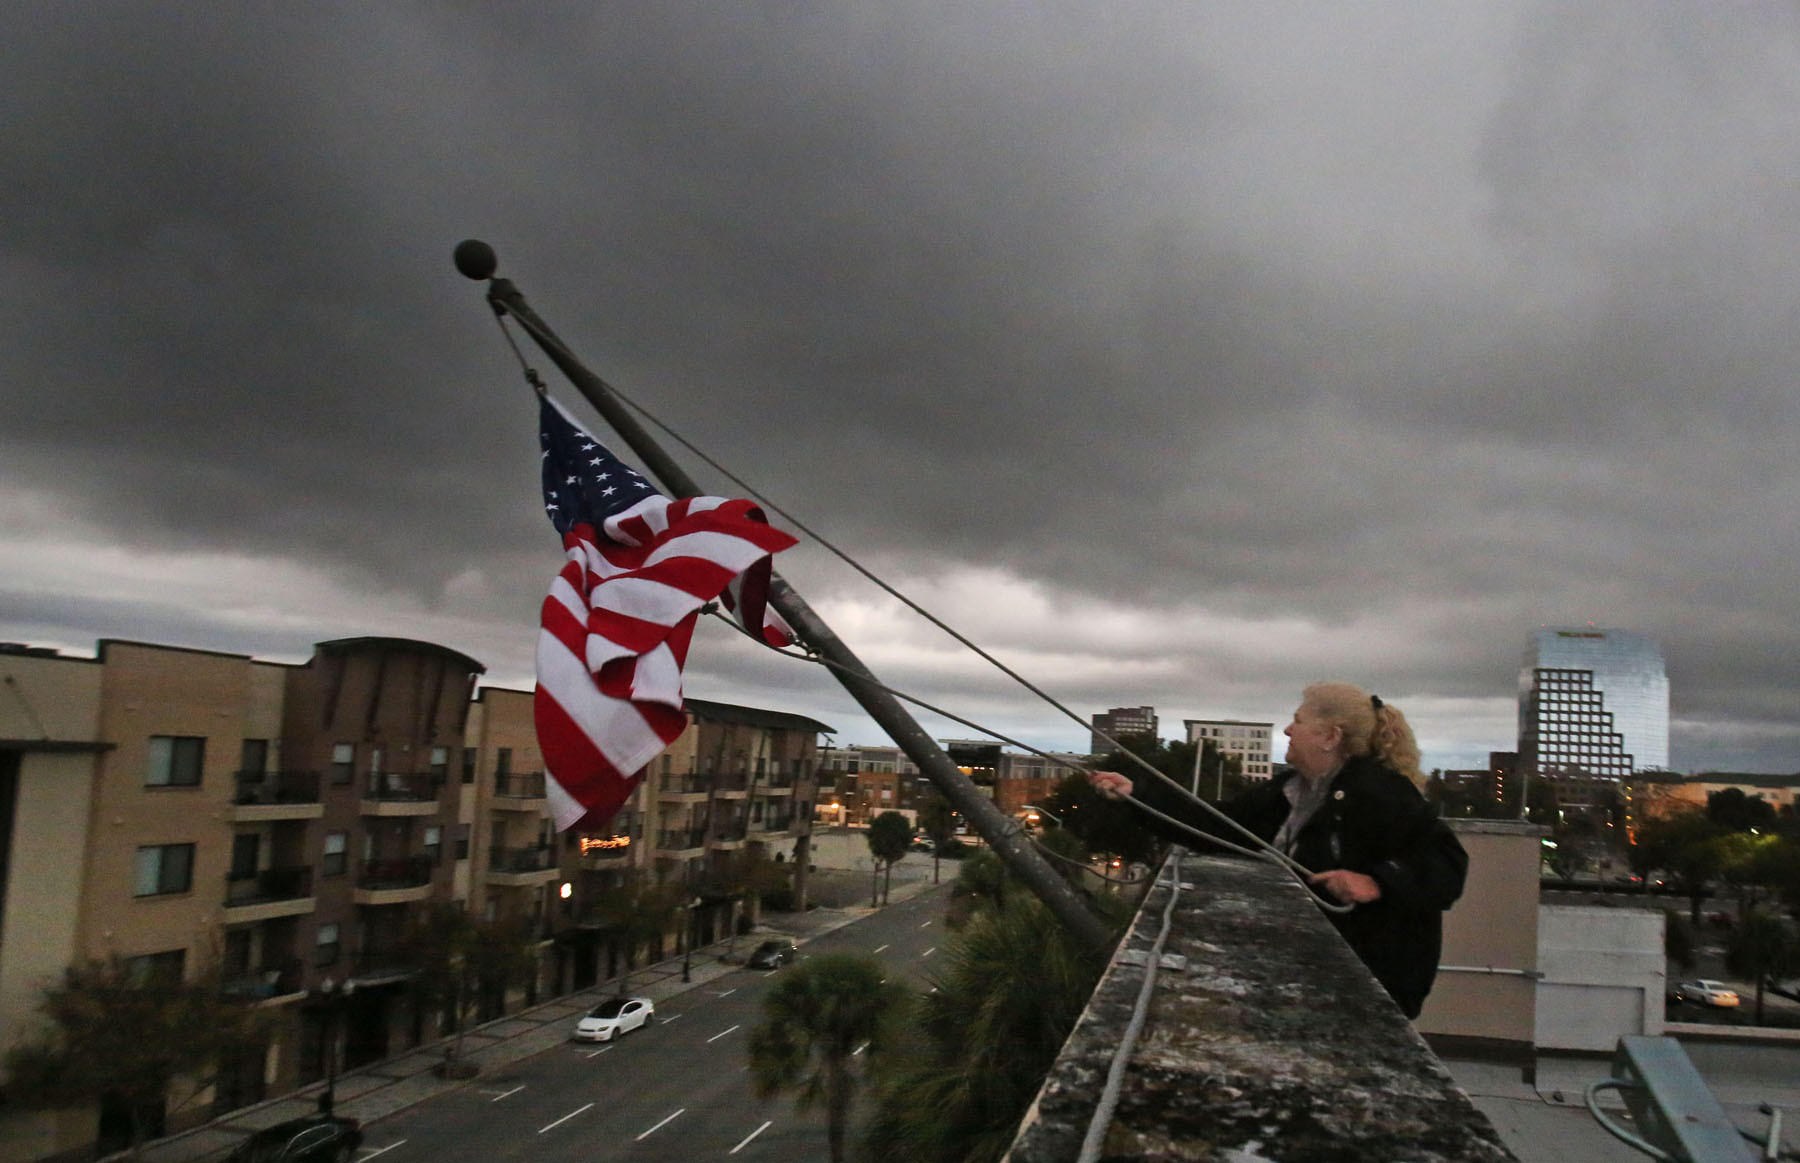 B.J. McMillian, a security officer, atop of the Orlando Sentinel building hoist old glory as a series of cold fronts approach downtown Orlando.